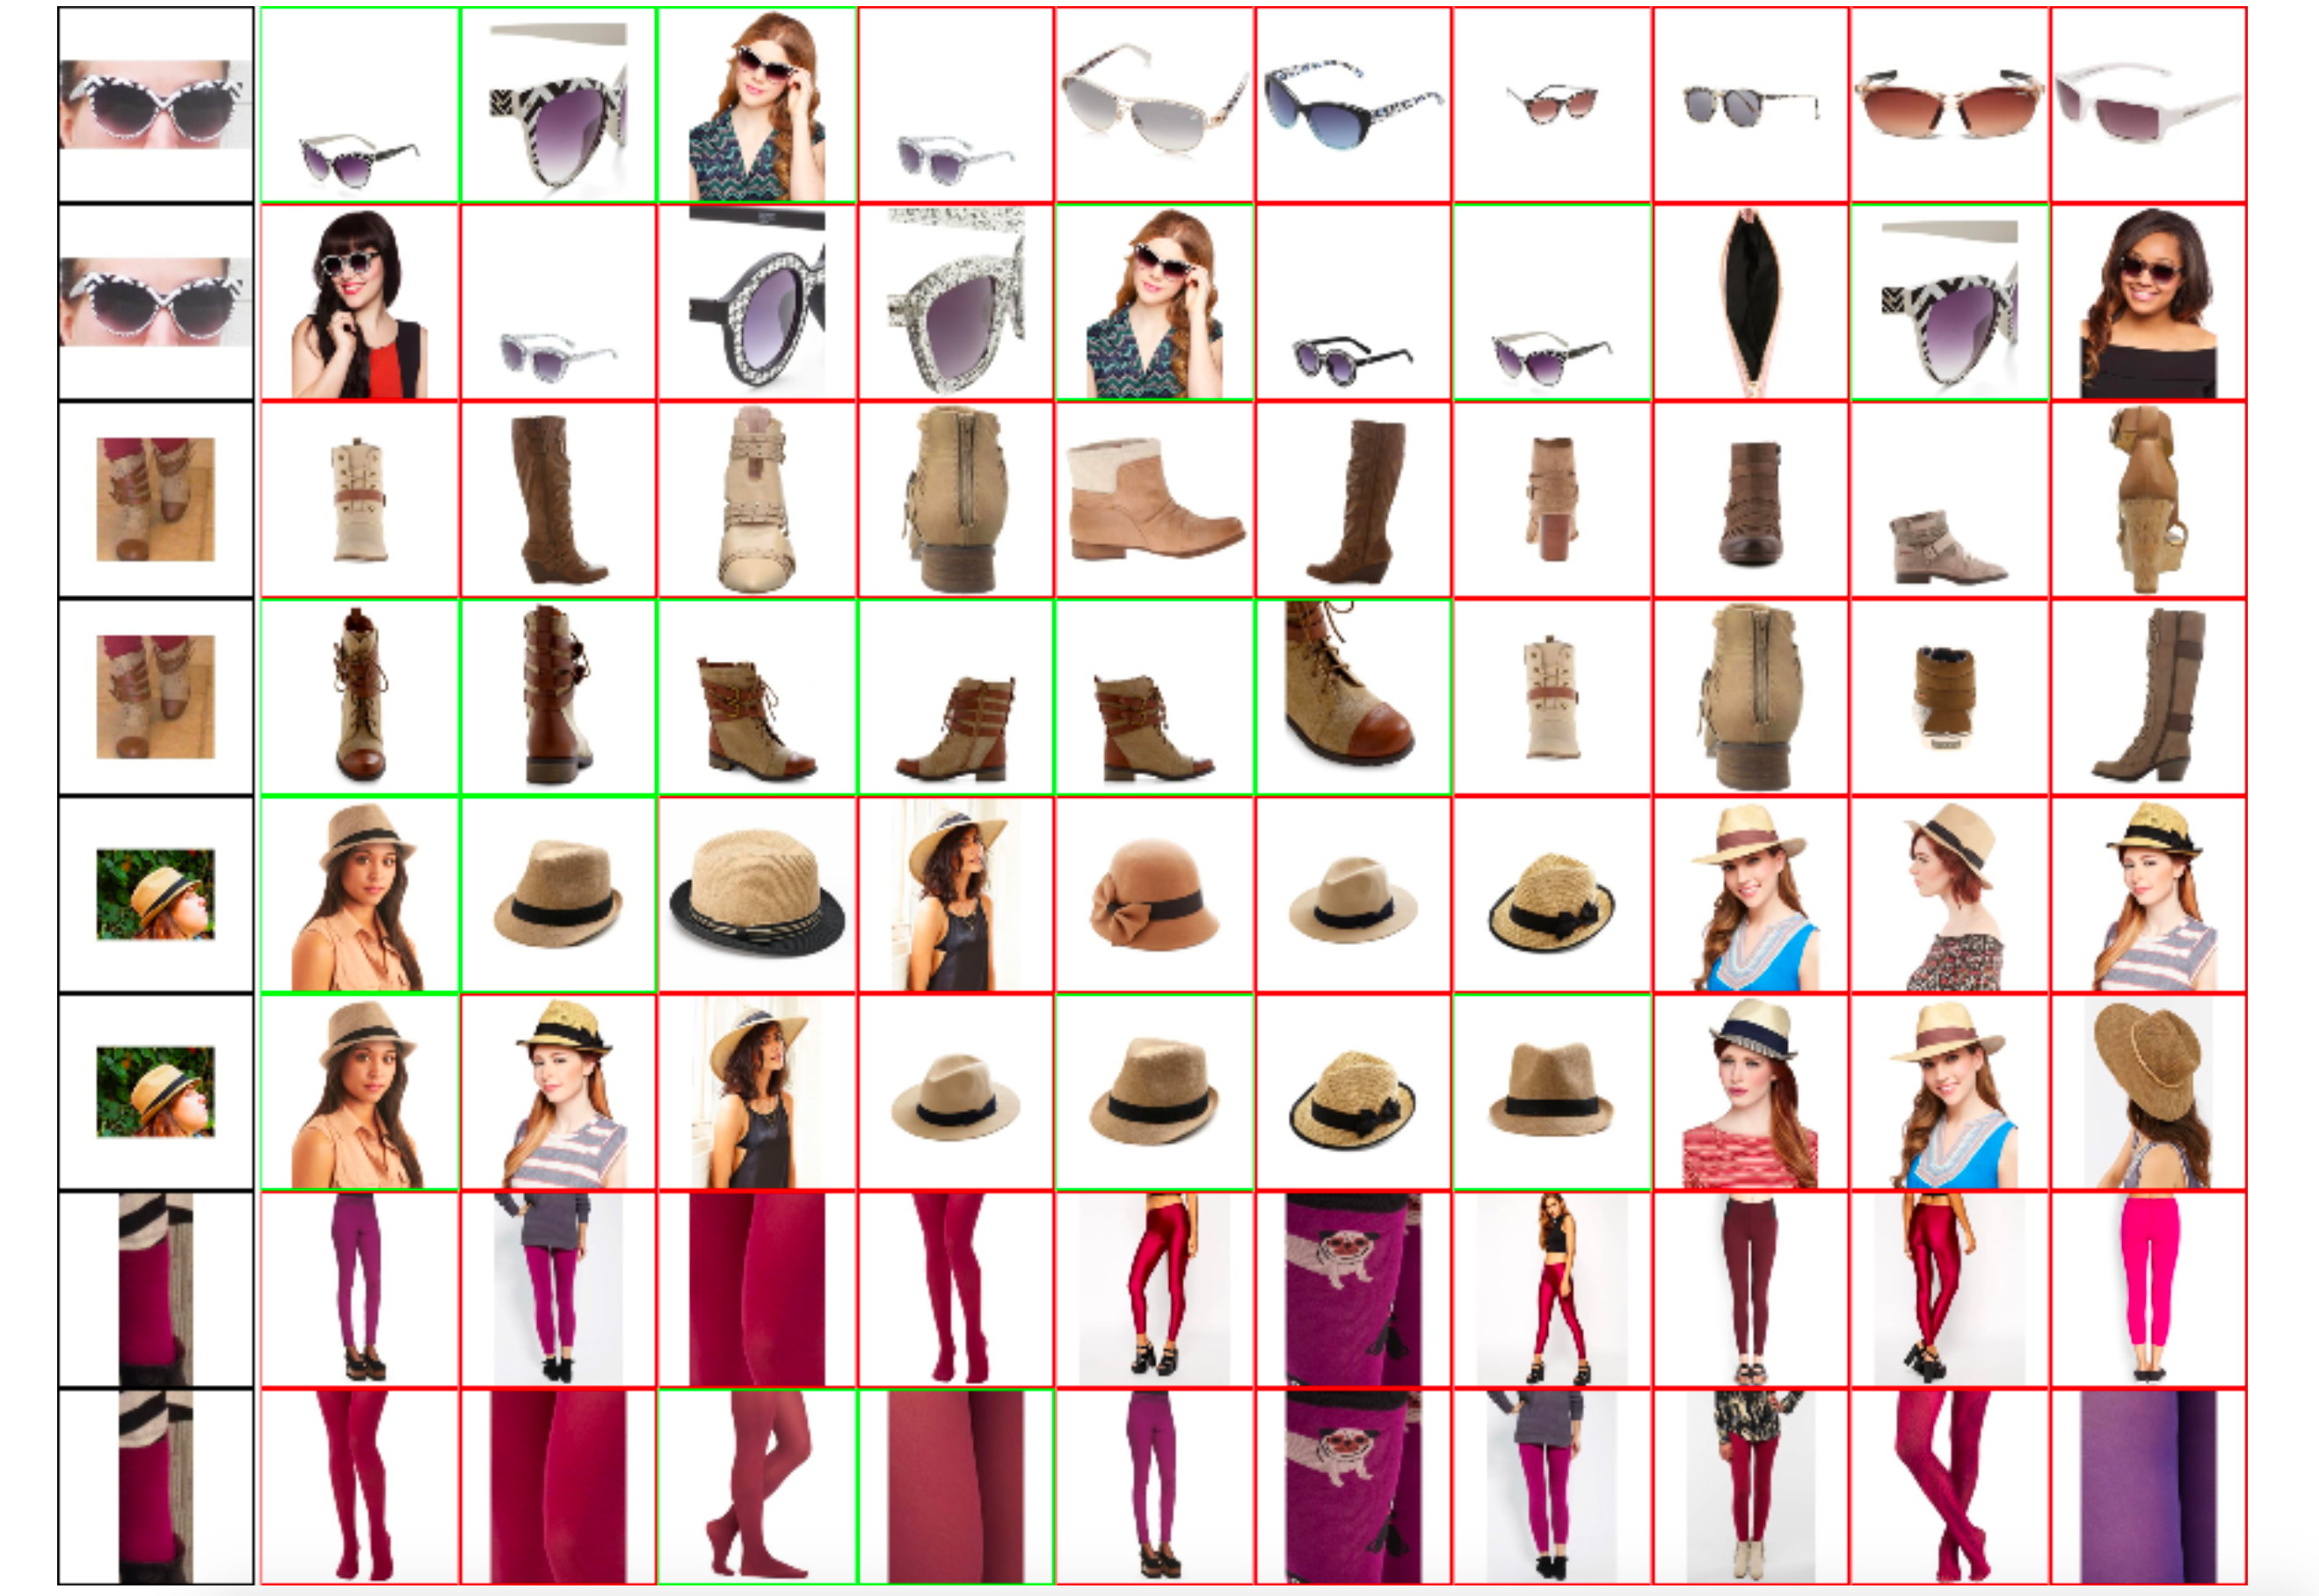 More retrieval results on Street2Shop dataset without and with re-ranking.